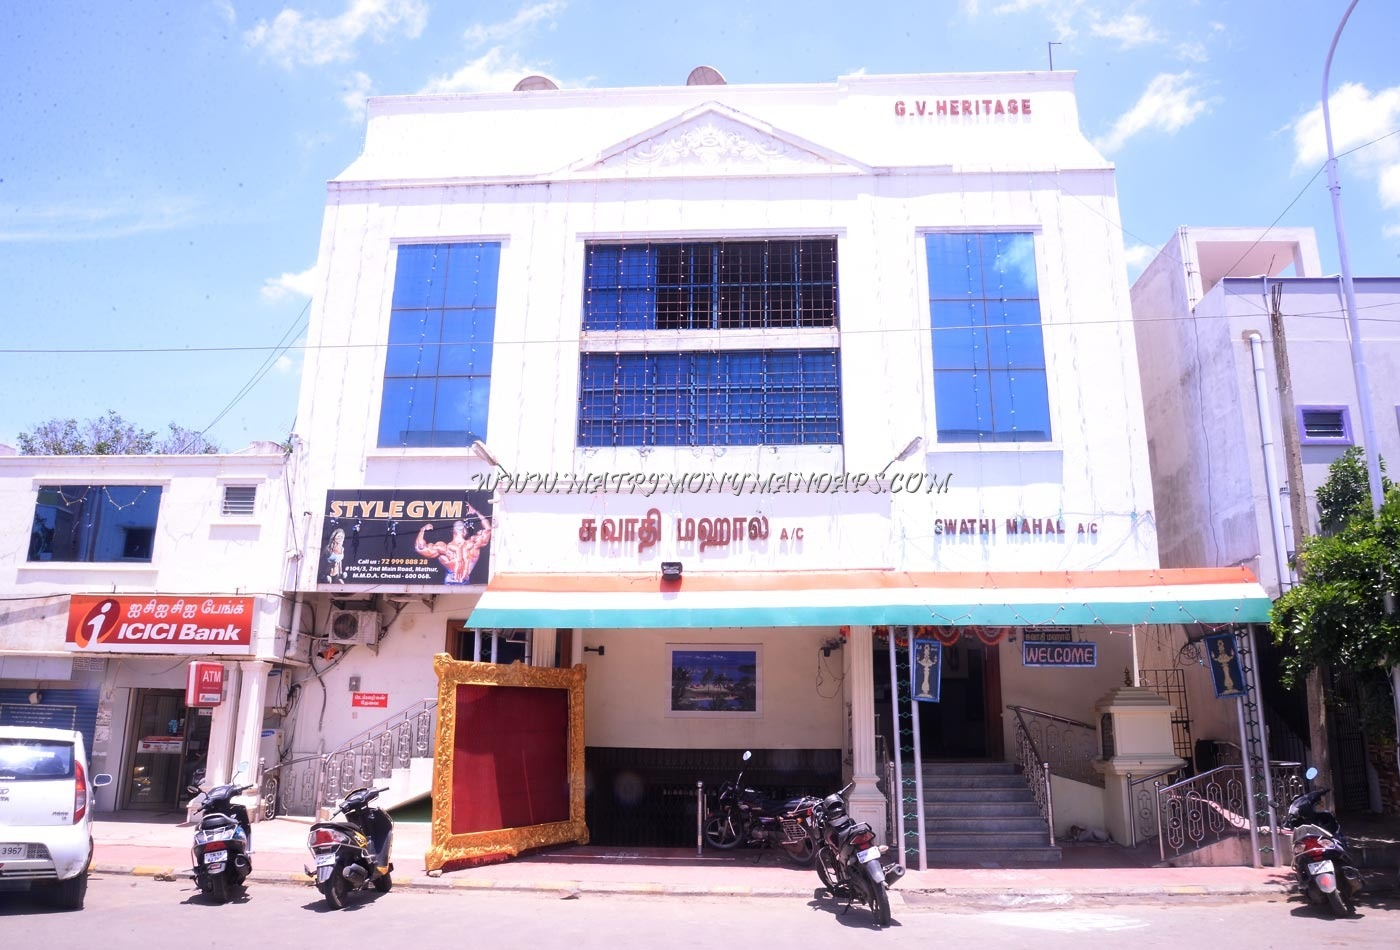 Find the availability of the Swathi Mahal  (A/C) in Mathur, Chennai and avail special offers